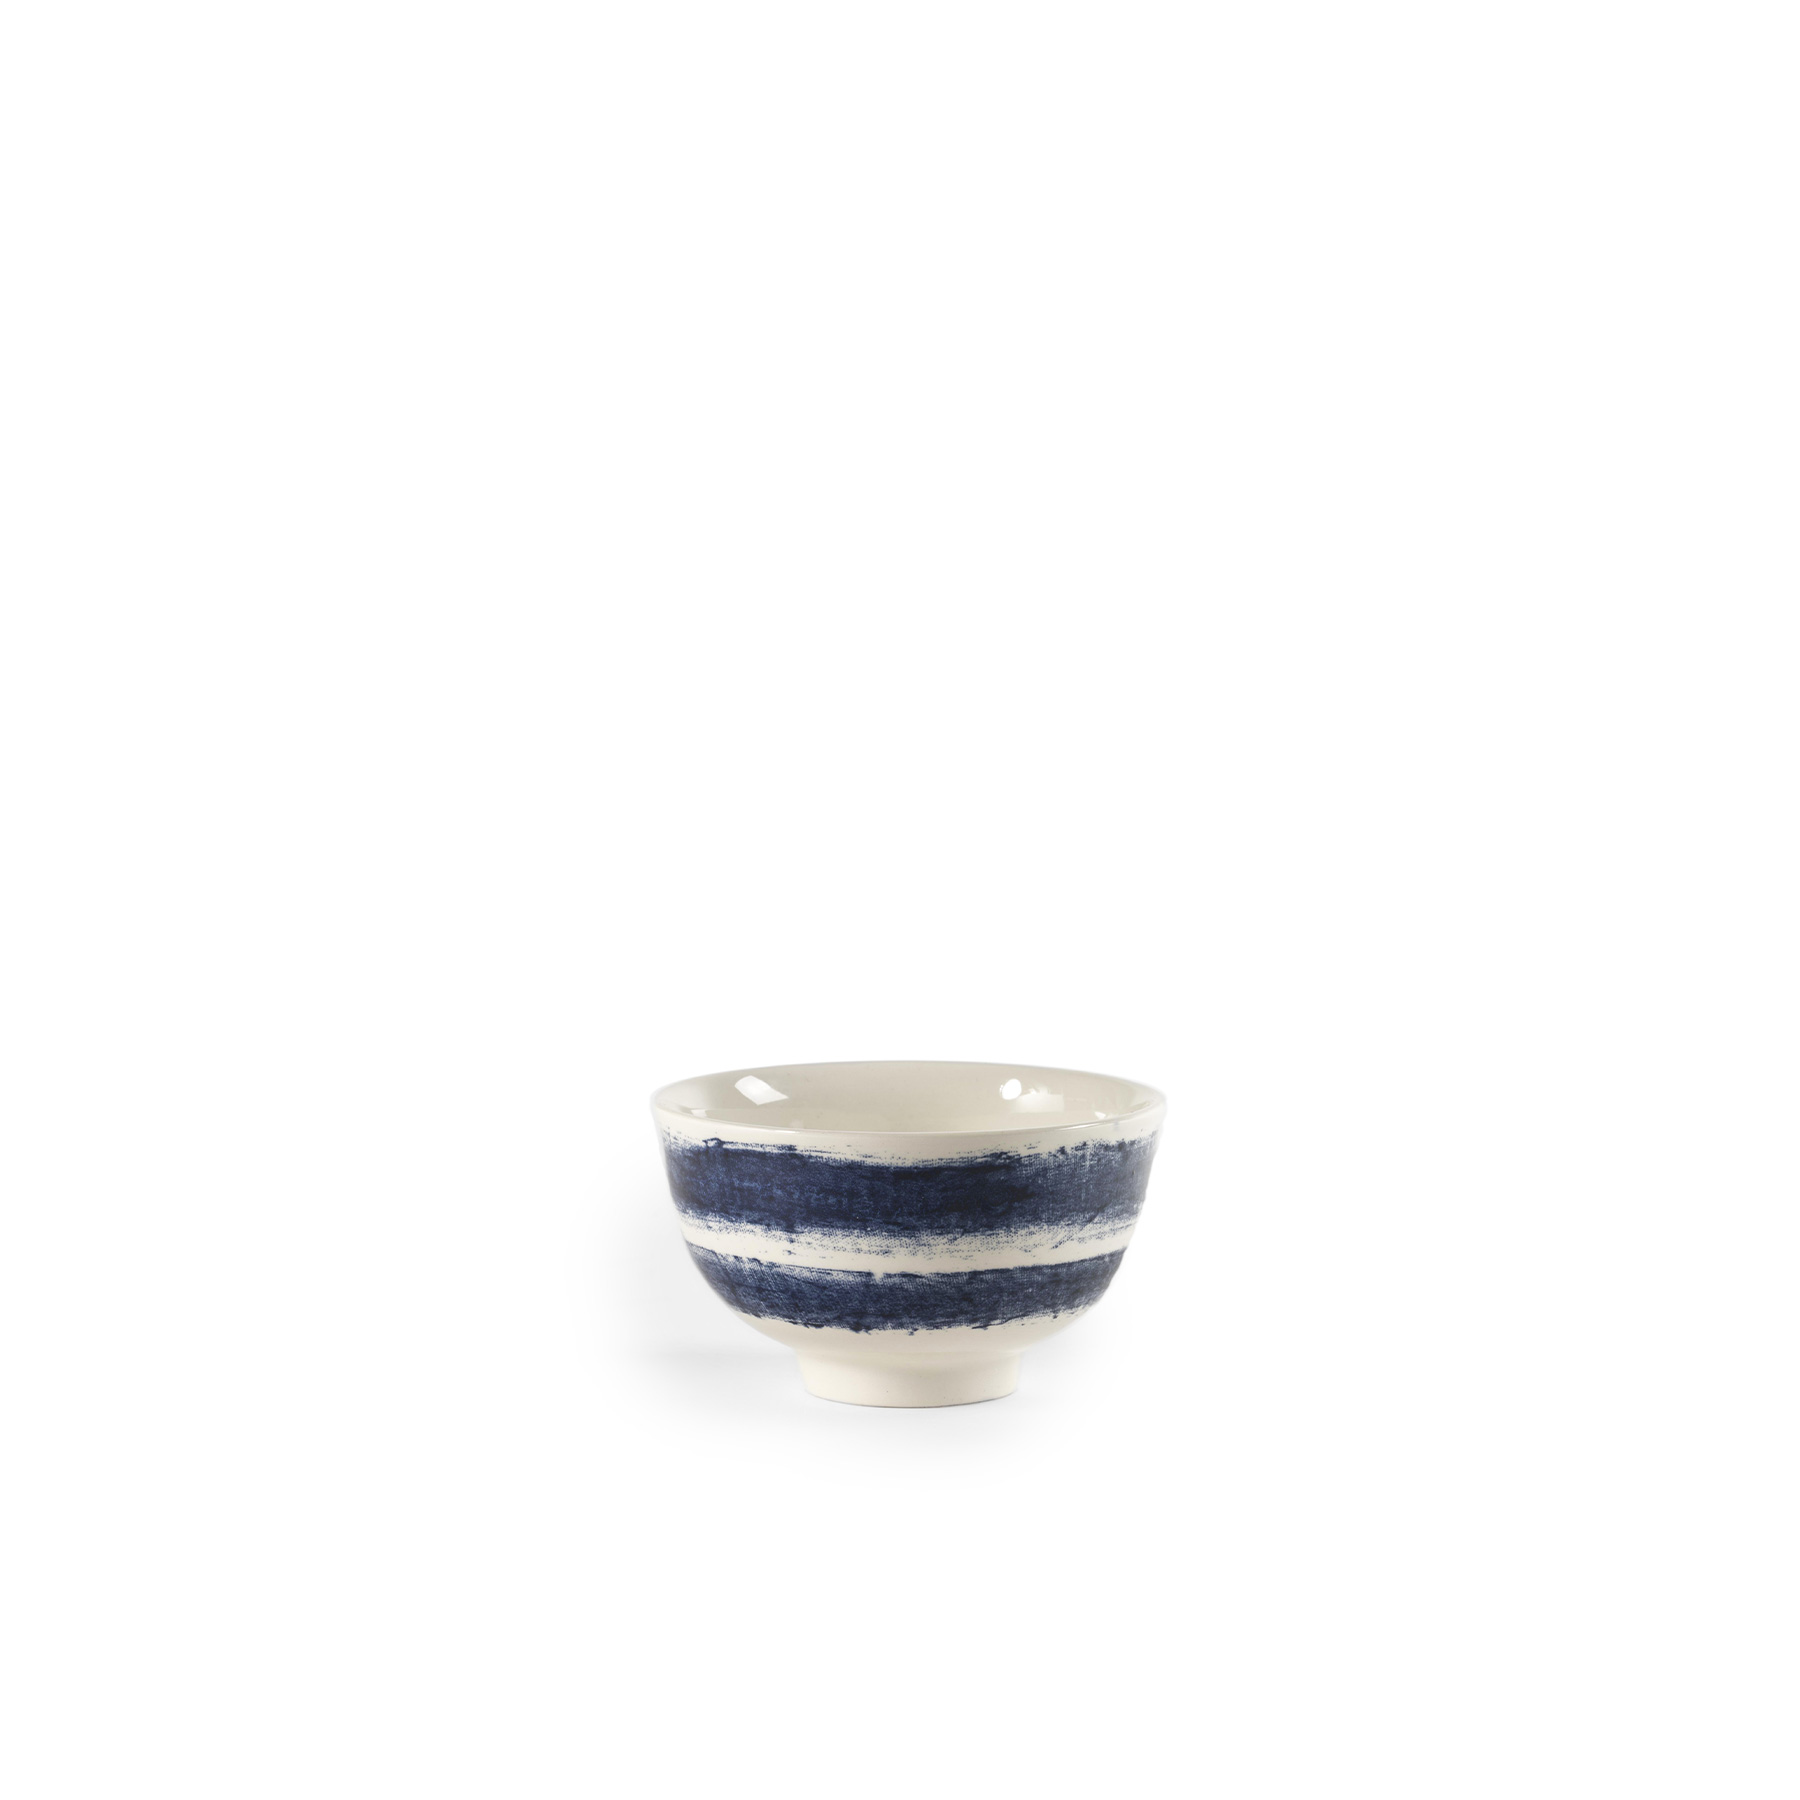 Indigo Rain Handleless Cup - Faye Toogood's addition to her range of ceramic designs for 1882 Ltd. puts a fresh spin on the forms and traditions of English creamware. Indigo Rain reinterprets the homely familiarity of blue-and-white striped crockery in a new design informed by the spirit of serendipitous discovery. Representing a streamlined take on our ceramic heritage, the fine earthenware employs the familiar tones of English Delftware: cream offset with a rich, deep blue. Broad bands of indigo glaze, like painterly washes of watercolour, are applied to rough canvas and then transferred to the pieces – the characteristic grain of the fabric imbues the delicate ceramics with the hardworking spirit of dark-dyed denim.  | Matter of Stuff